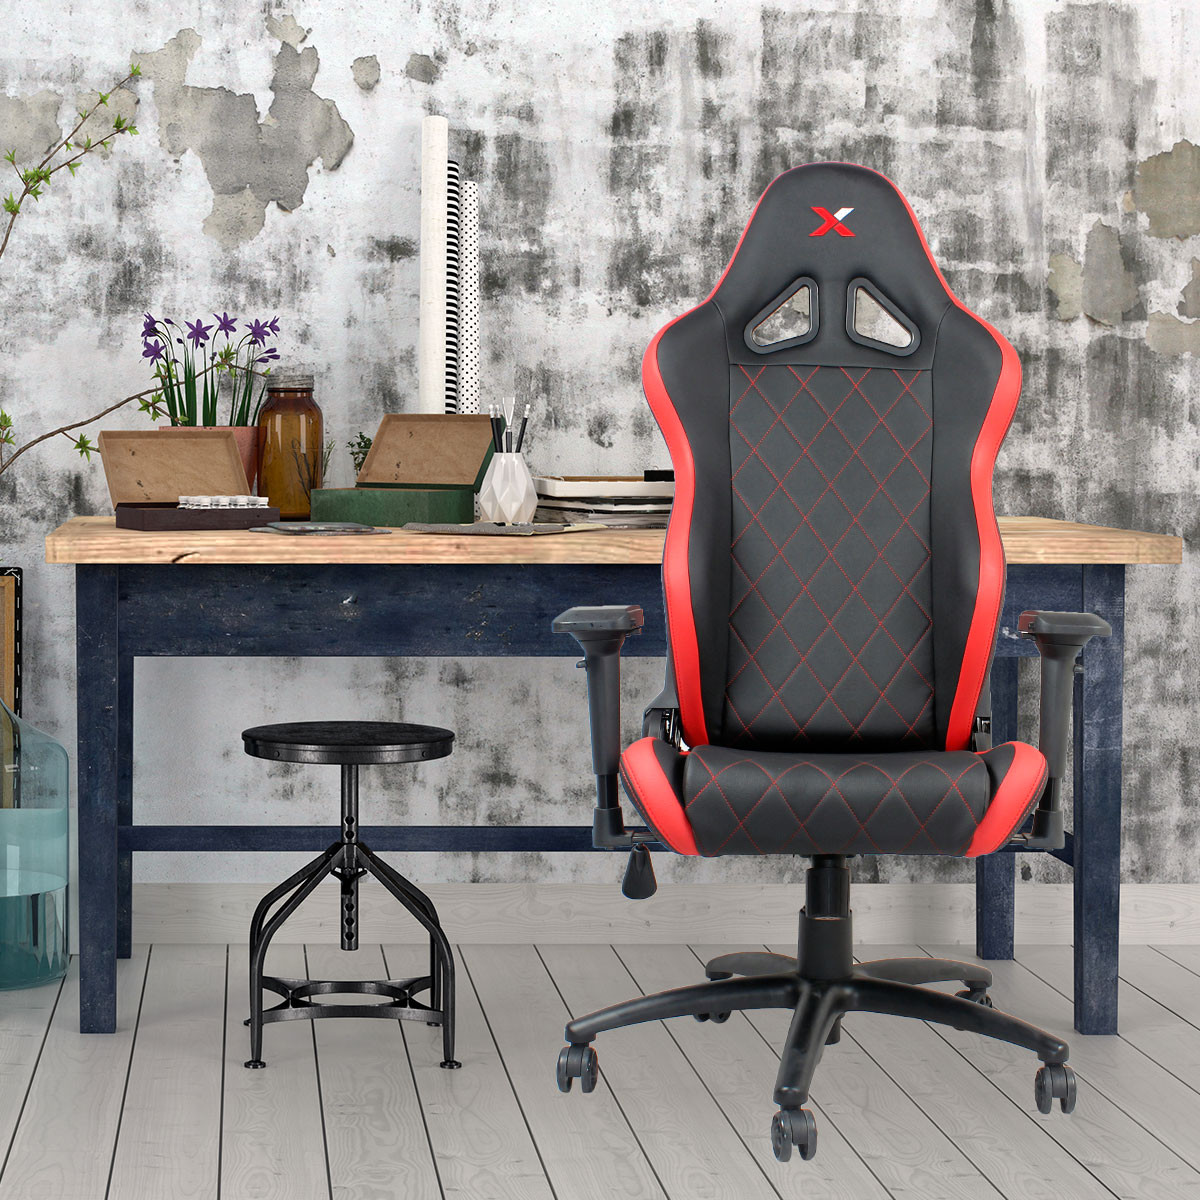 Ferrino Gaming Chair